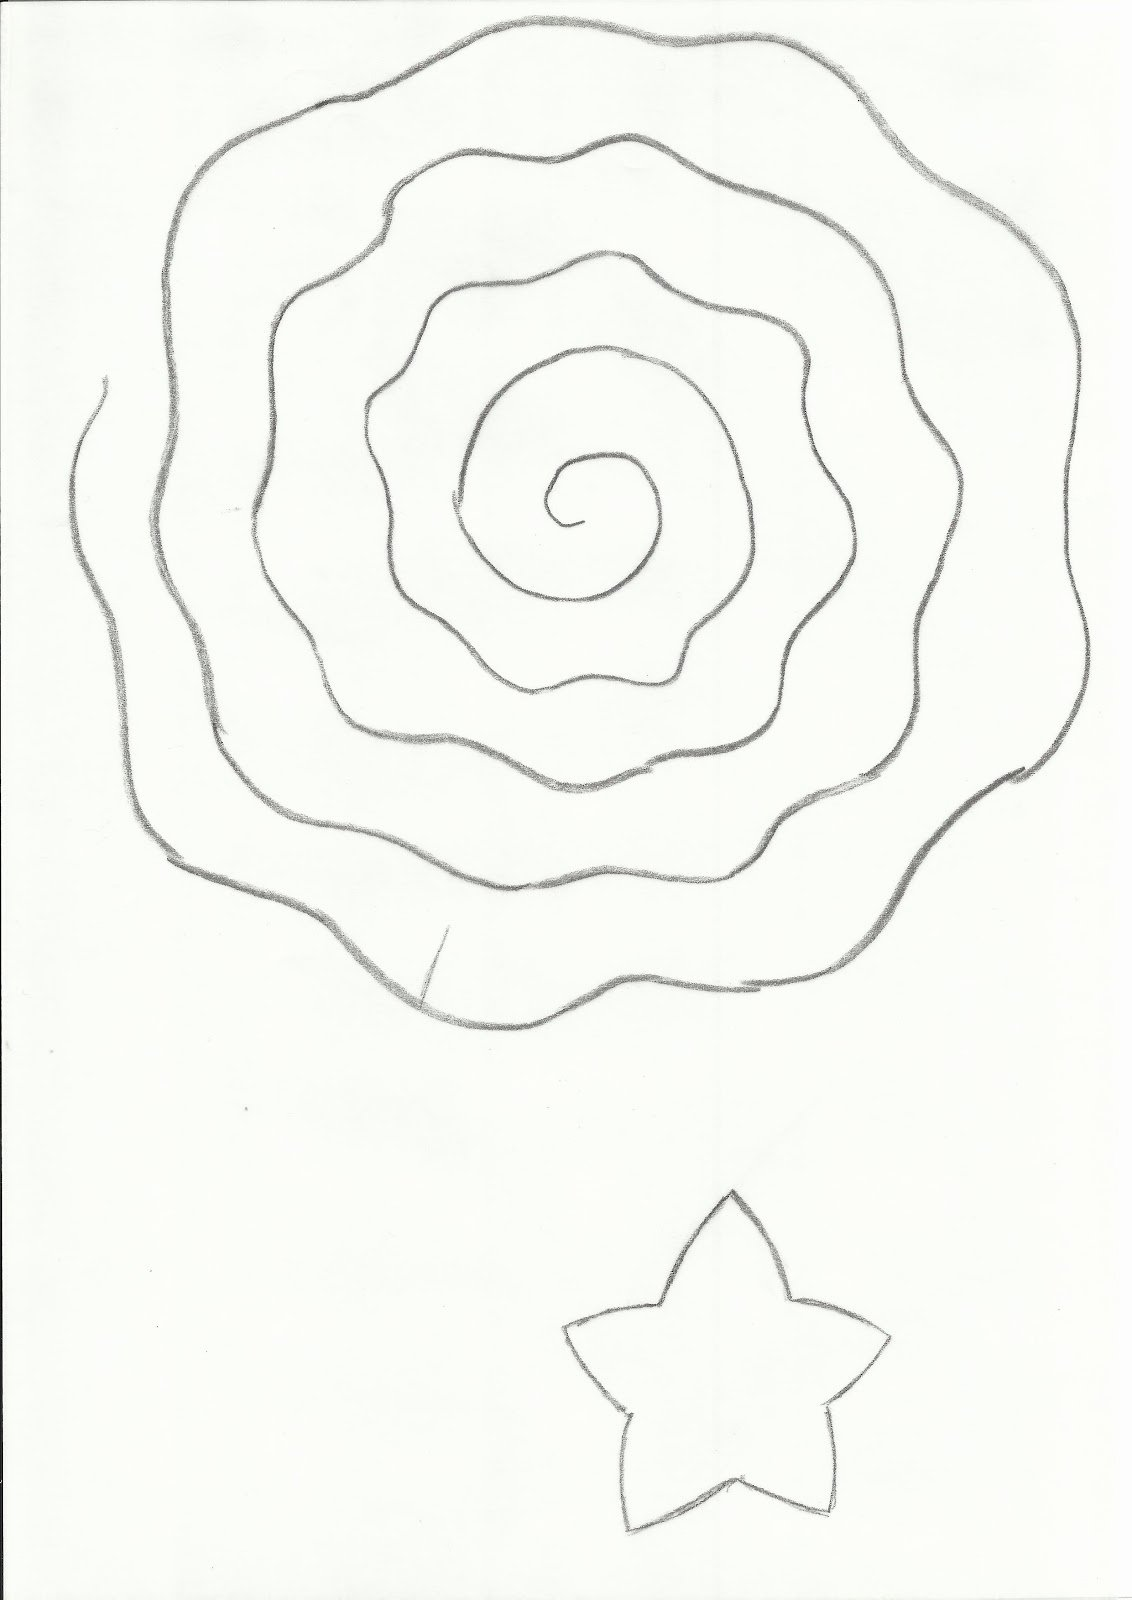 Paper Flower Templates to Print Elegant Shabby Rolled Spiral Flower Tutorial Lots Of Photos